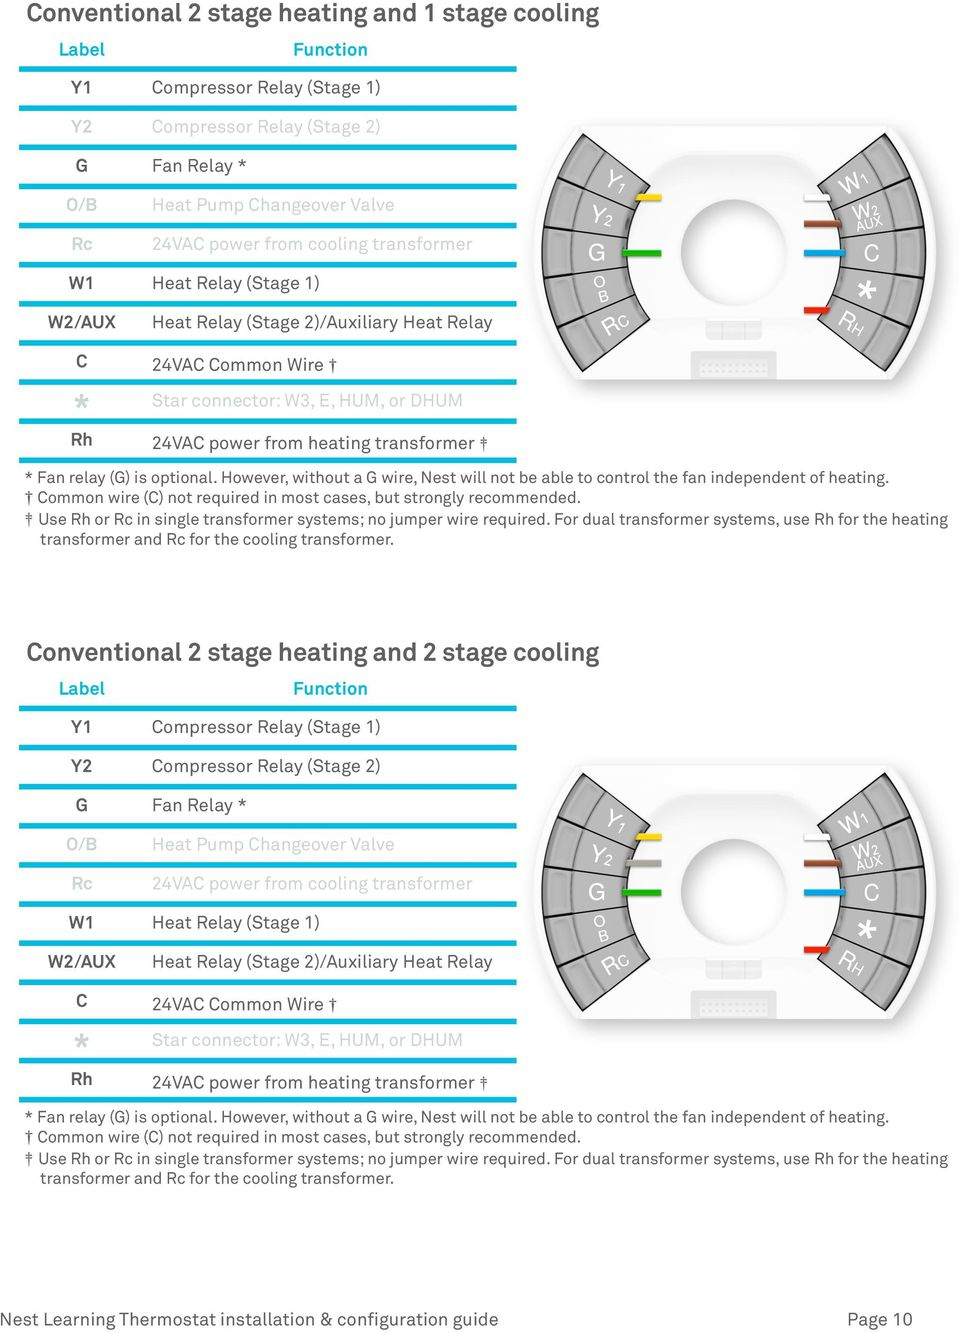 Nest Learning Thermostat Pro Installation & Configuration Guide - Pdf - Wiring Diagram Nest E